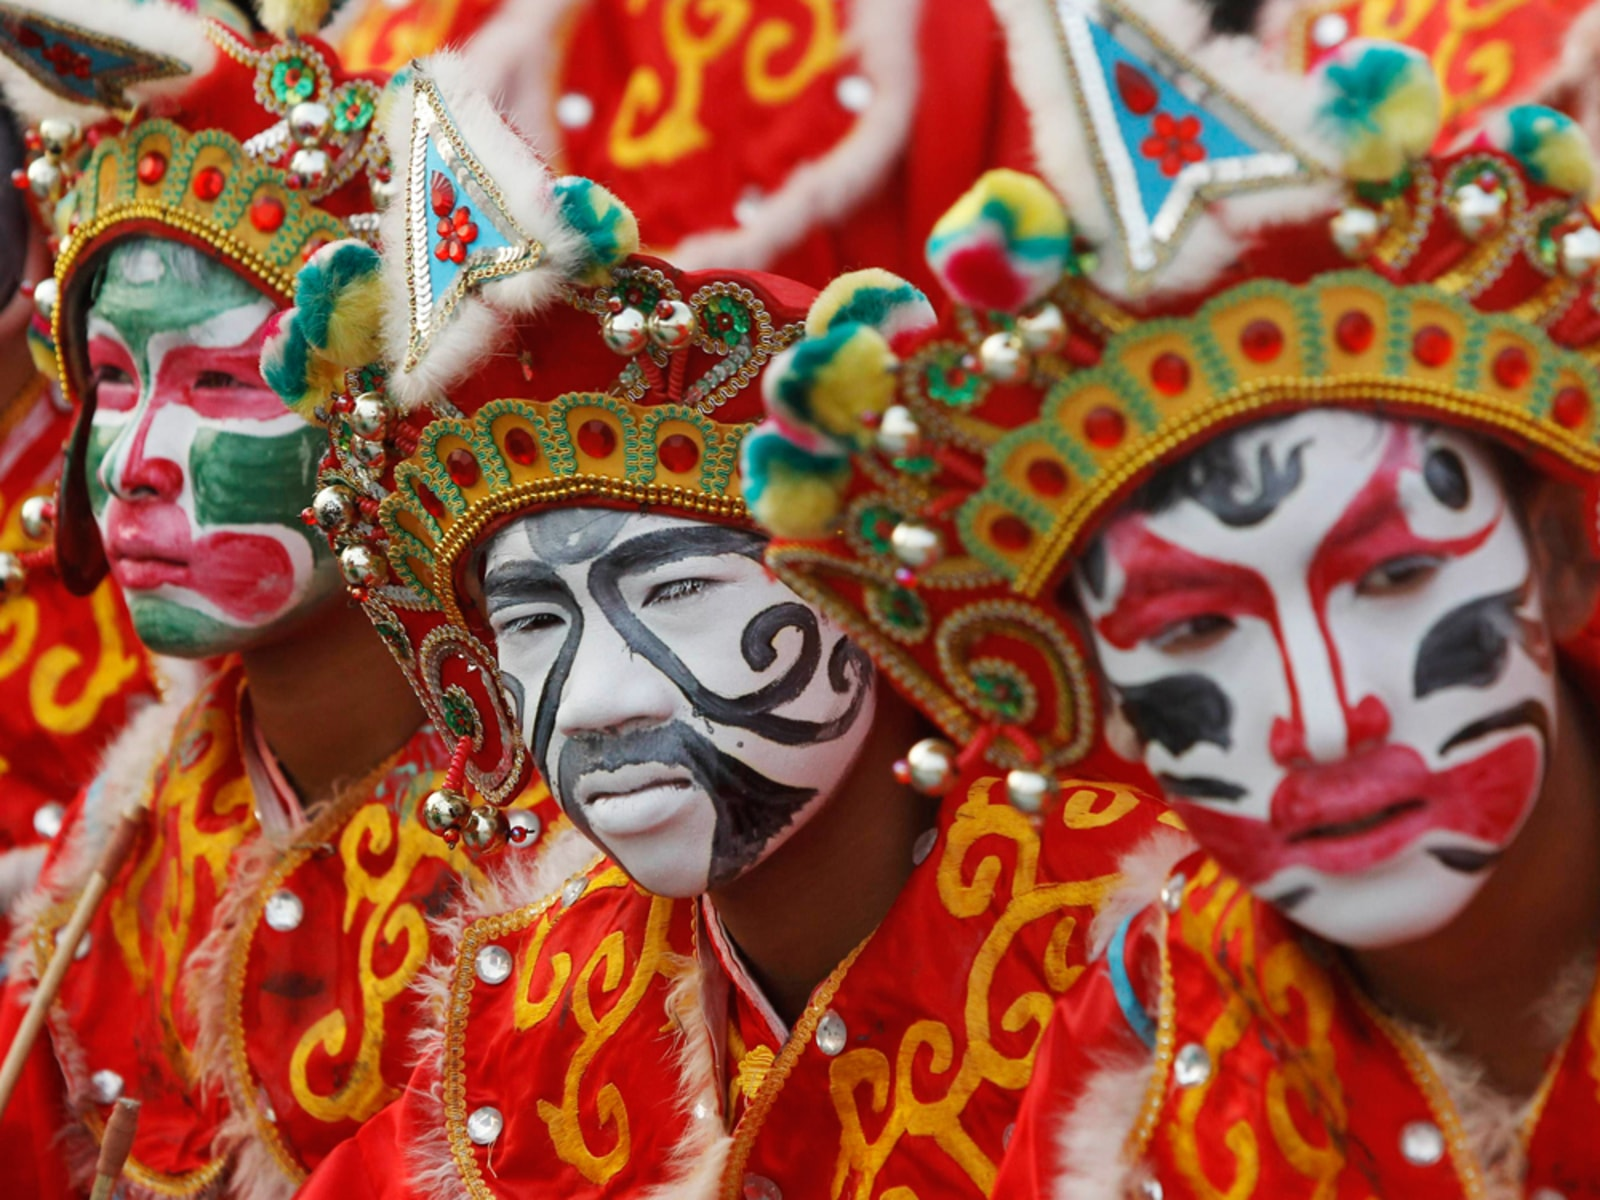 Image: Traditional Chinese dancers wait to perform ahead of the Chinese Lunar New Year celebrations in Suphan Buri province